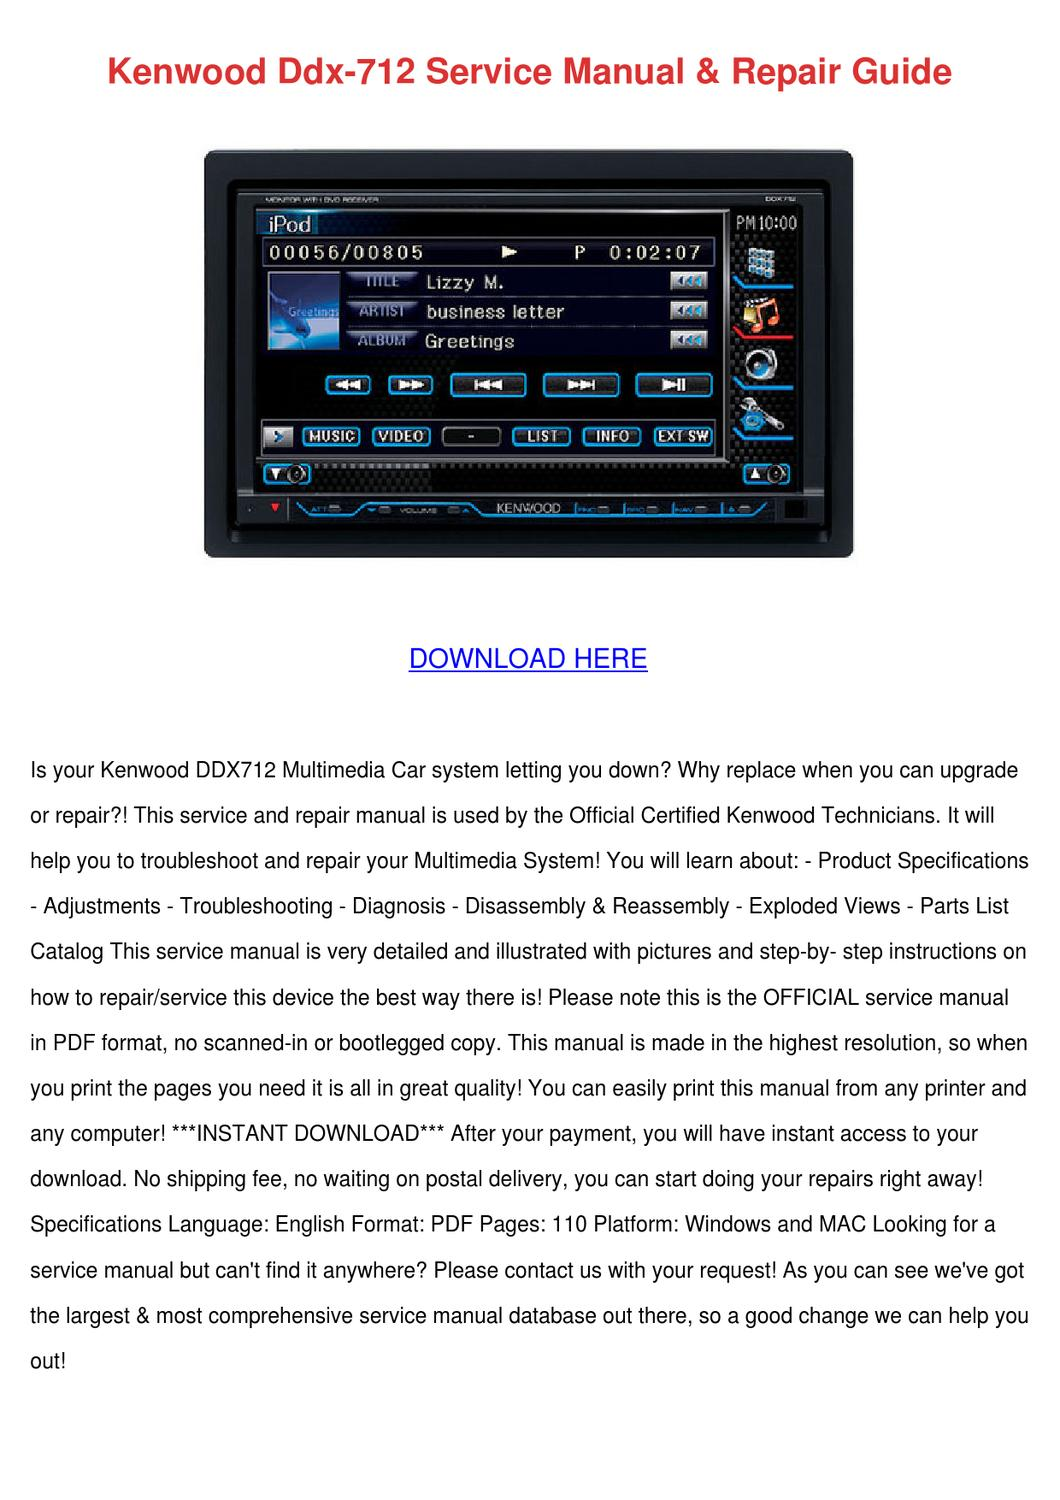 hight resolution of kenwood ddx 712 service manual repair guide by sherice lasala issuu